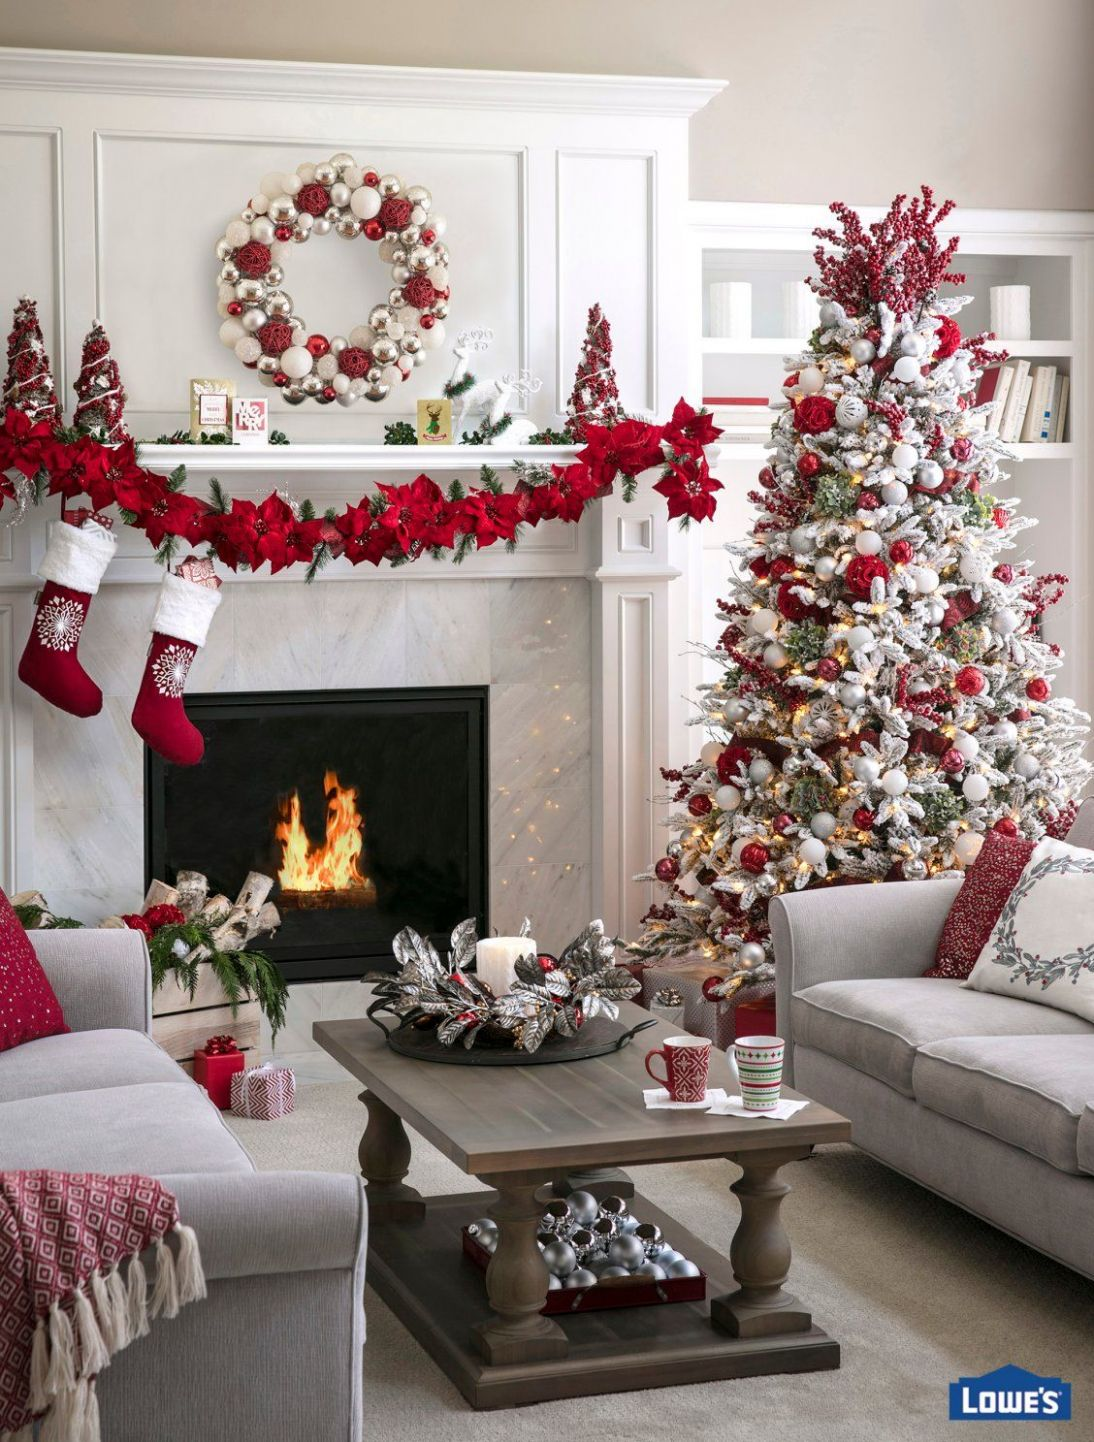 Plan Living Space Holiday Decor Ideas | Christmas living rooms ..